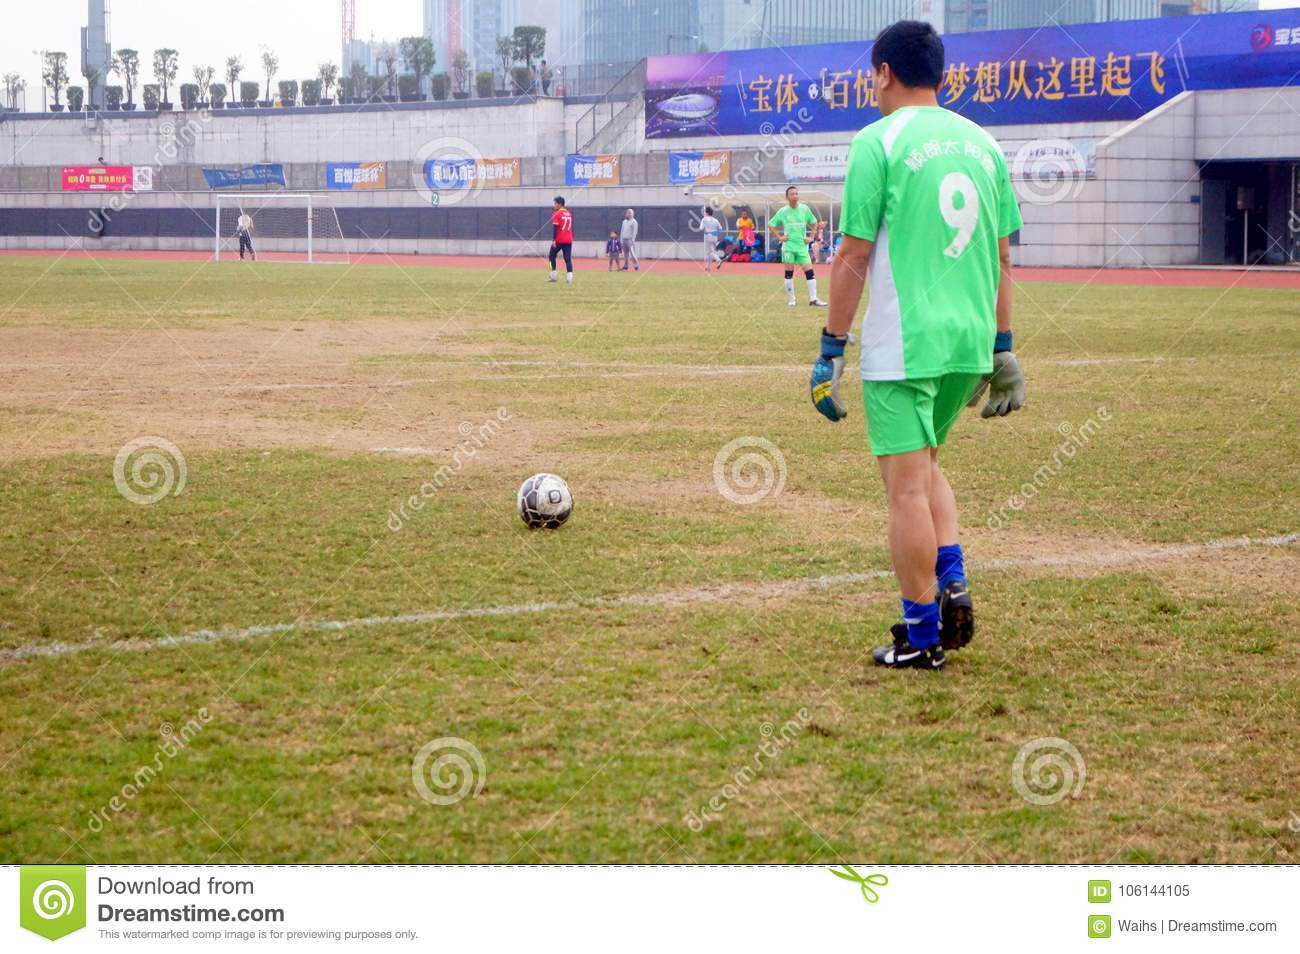 Shenzhen, China: in the ongoing football match